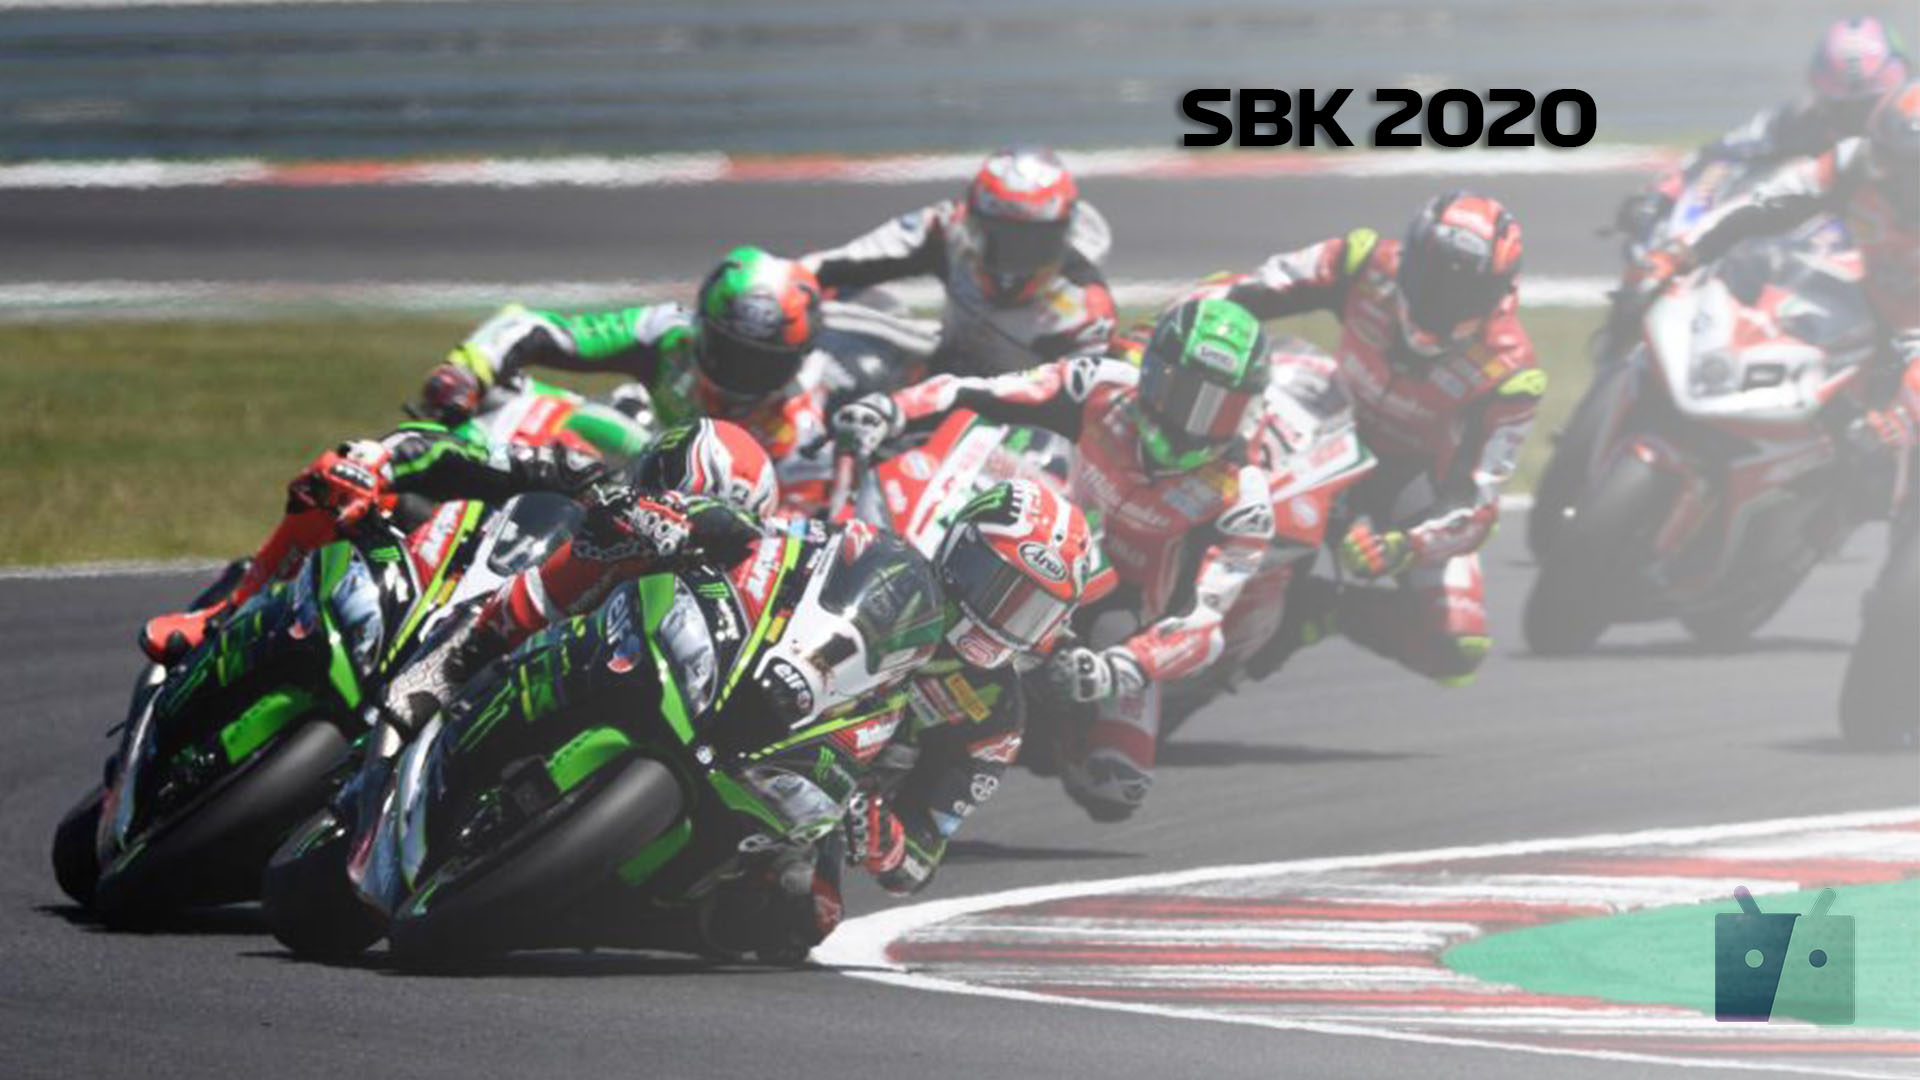 Come vedere la Superbike 2020 in TV e streaming